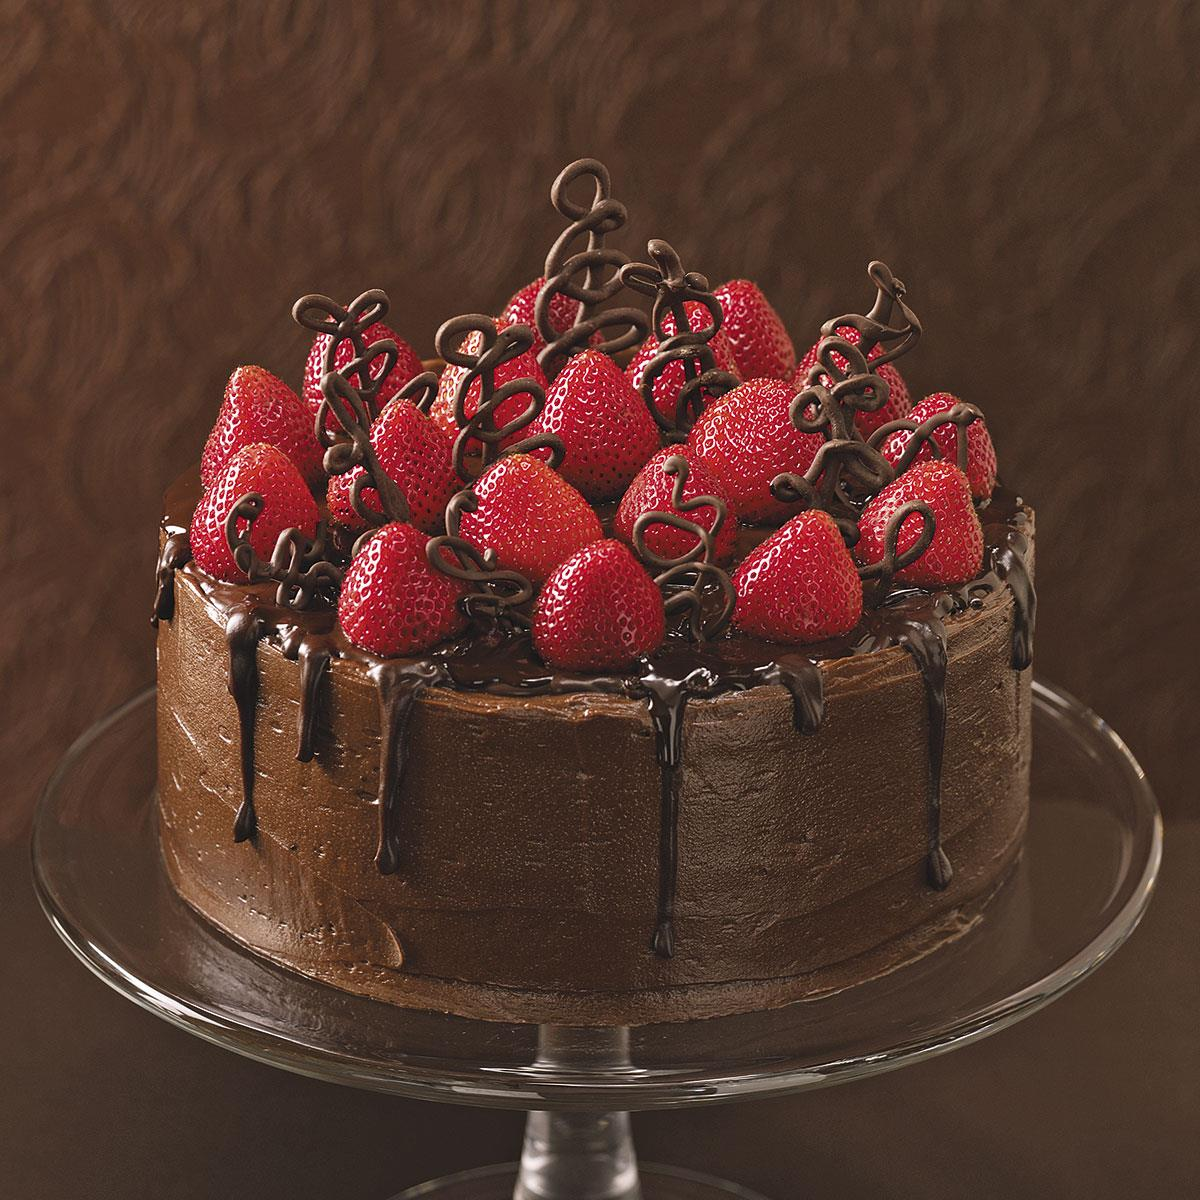 Chocolate Strawberry Celebration Cake Recipe